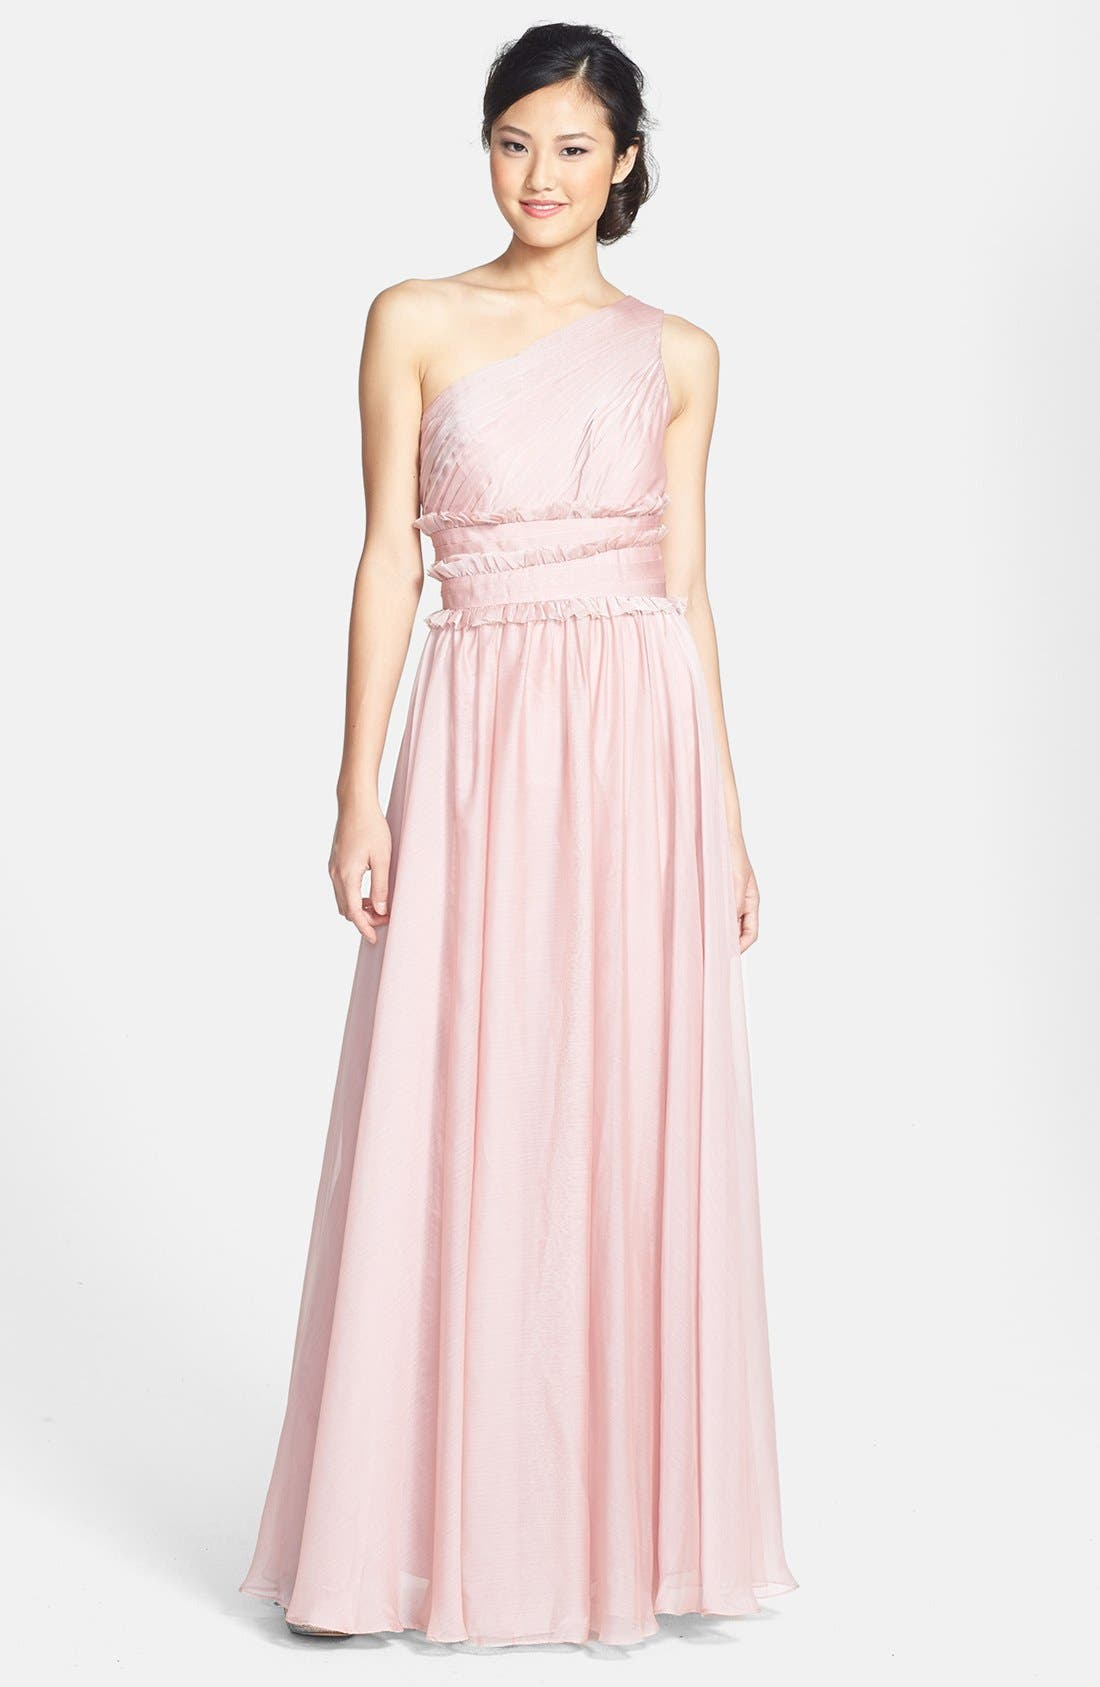 Main Image - ML Monique Lhuillier Bridesmaids One-Shoulder Chiffon Gown (Nordstrom Exclusive)